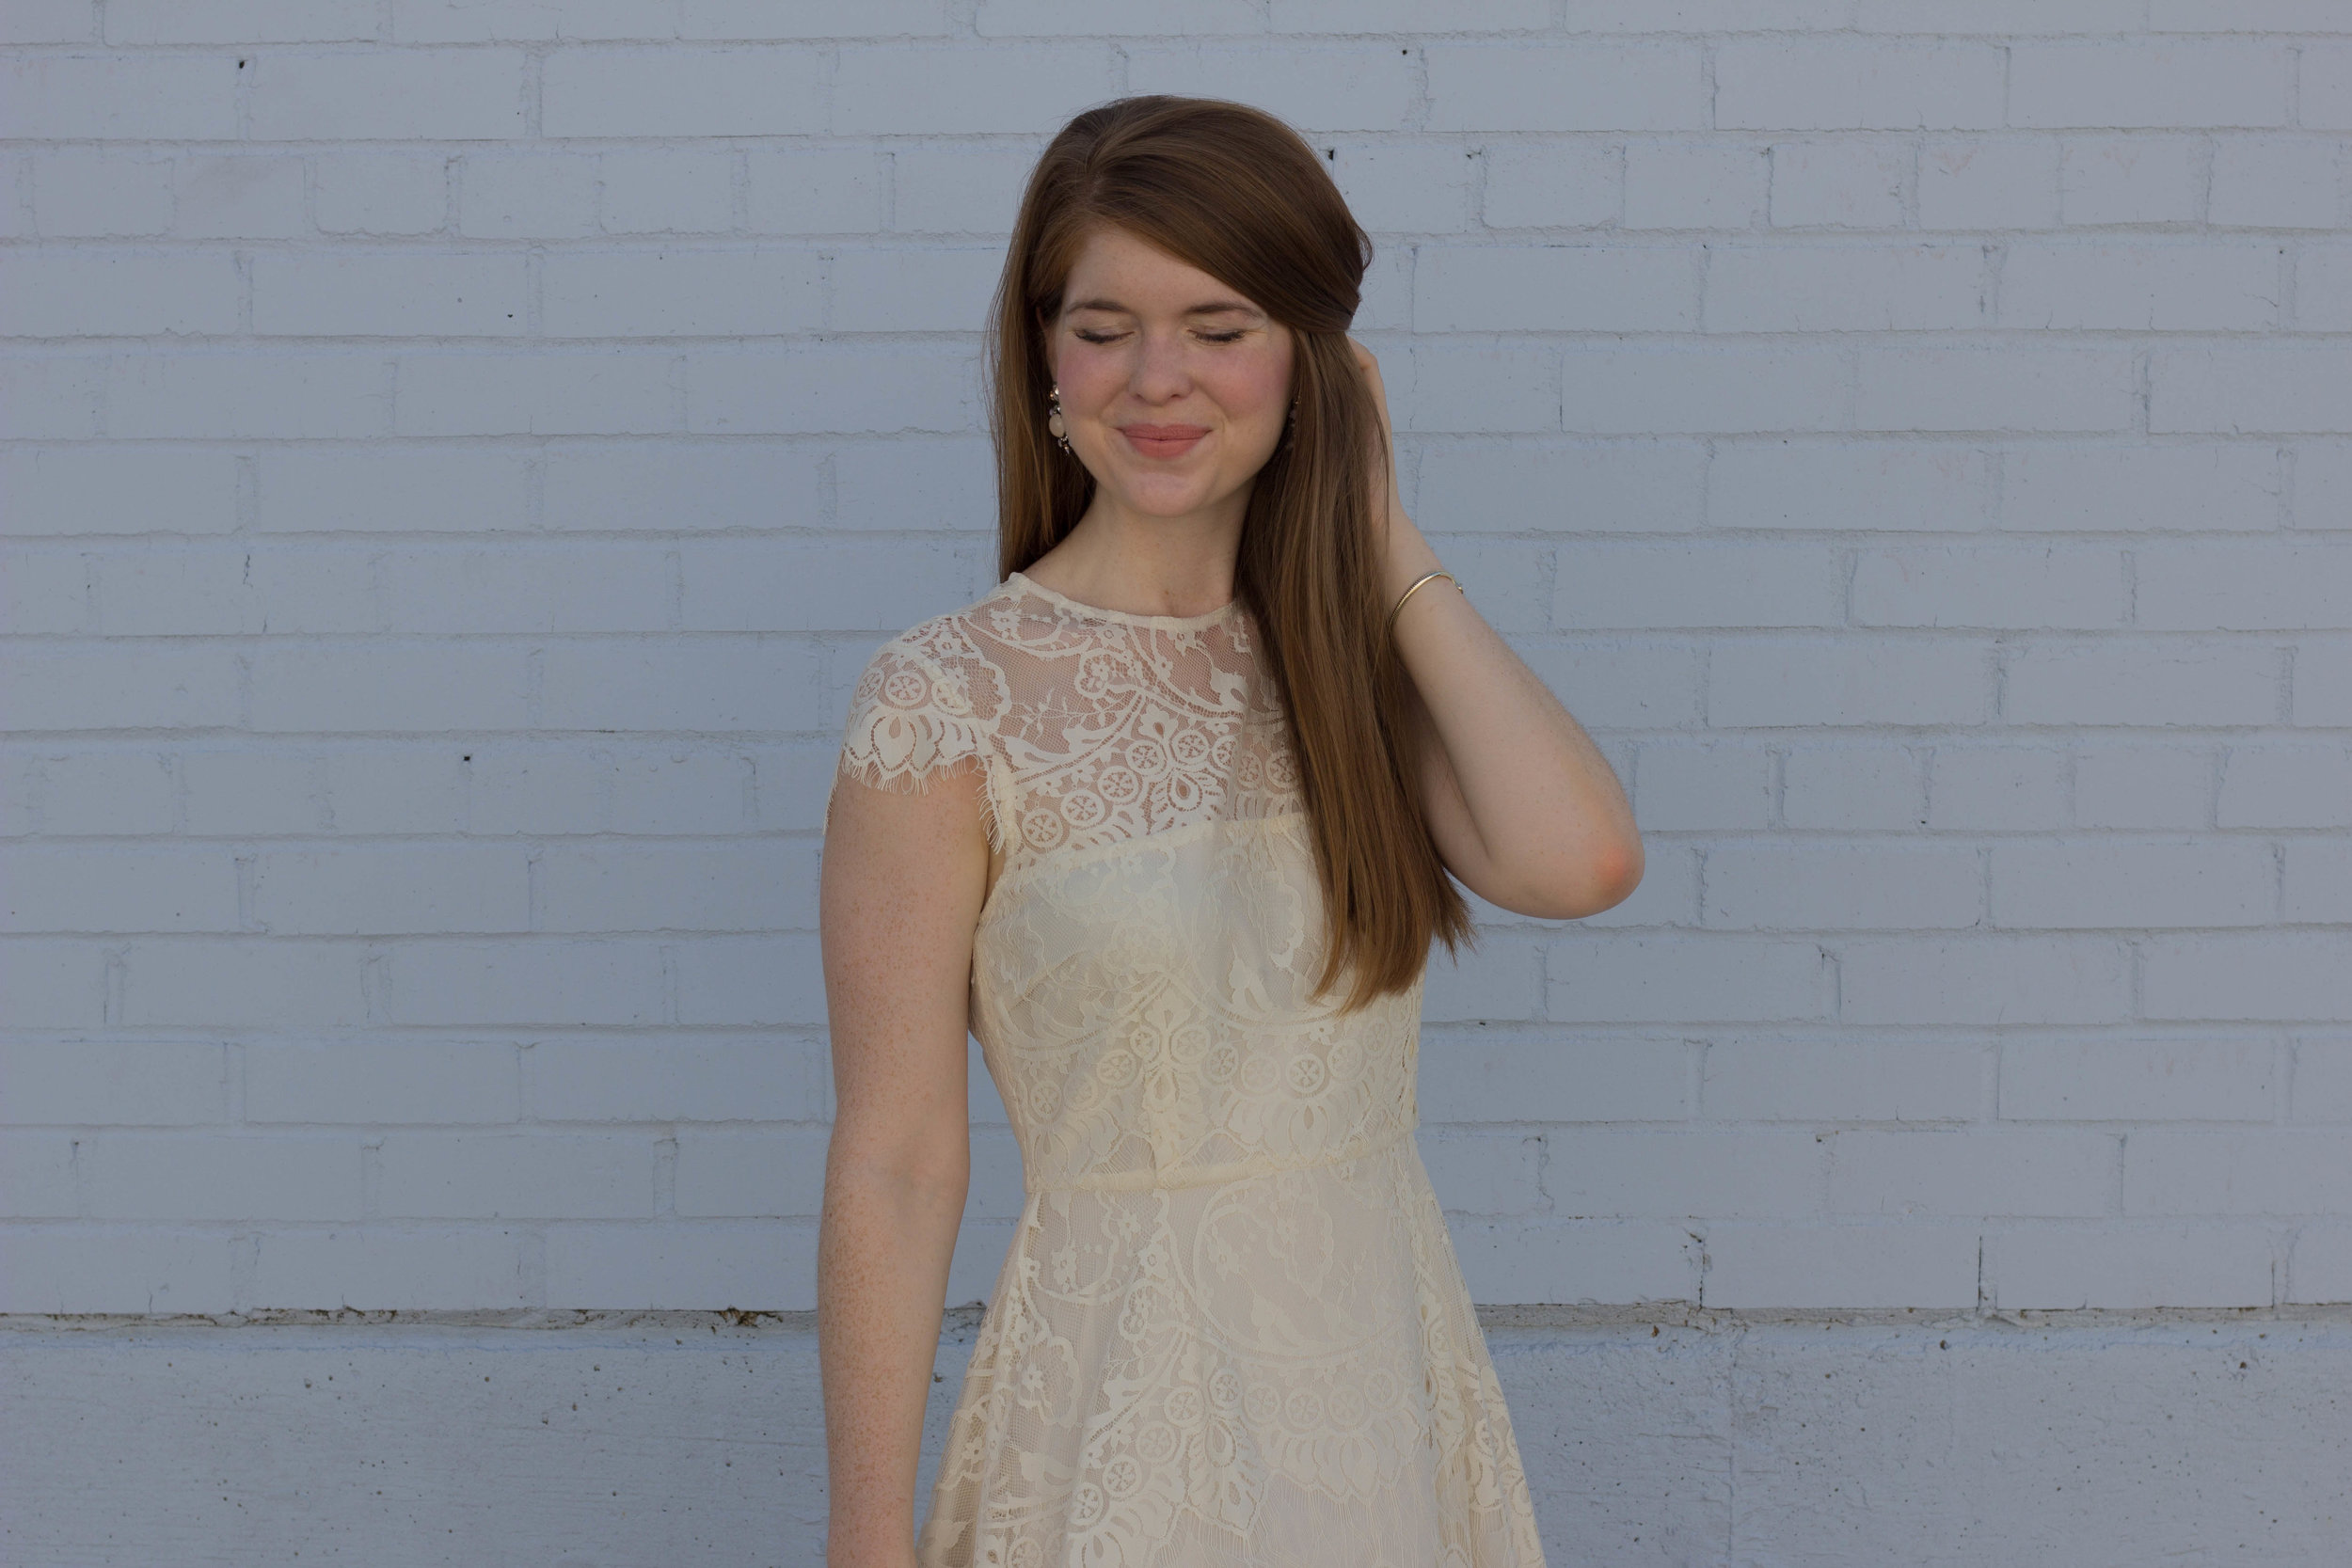 bb dakota lace dress, bridal shower dress, ivory lace dress, what to give as a hostess gift, the perfect hostess gift no matter the occasion, rewined candles, blanc collection